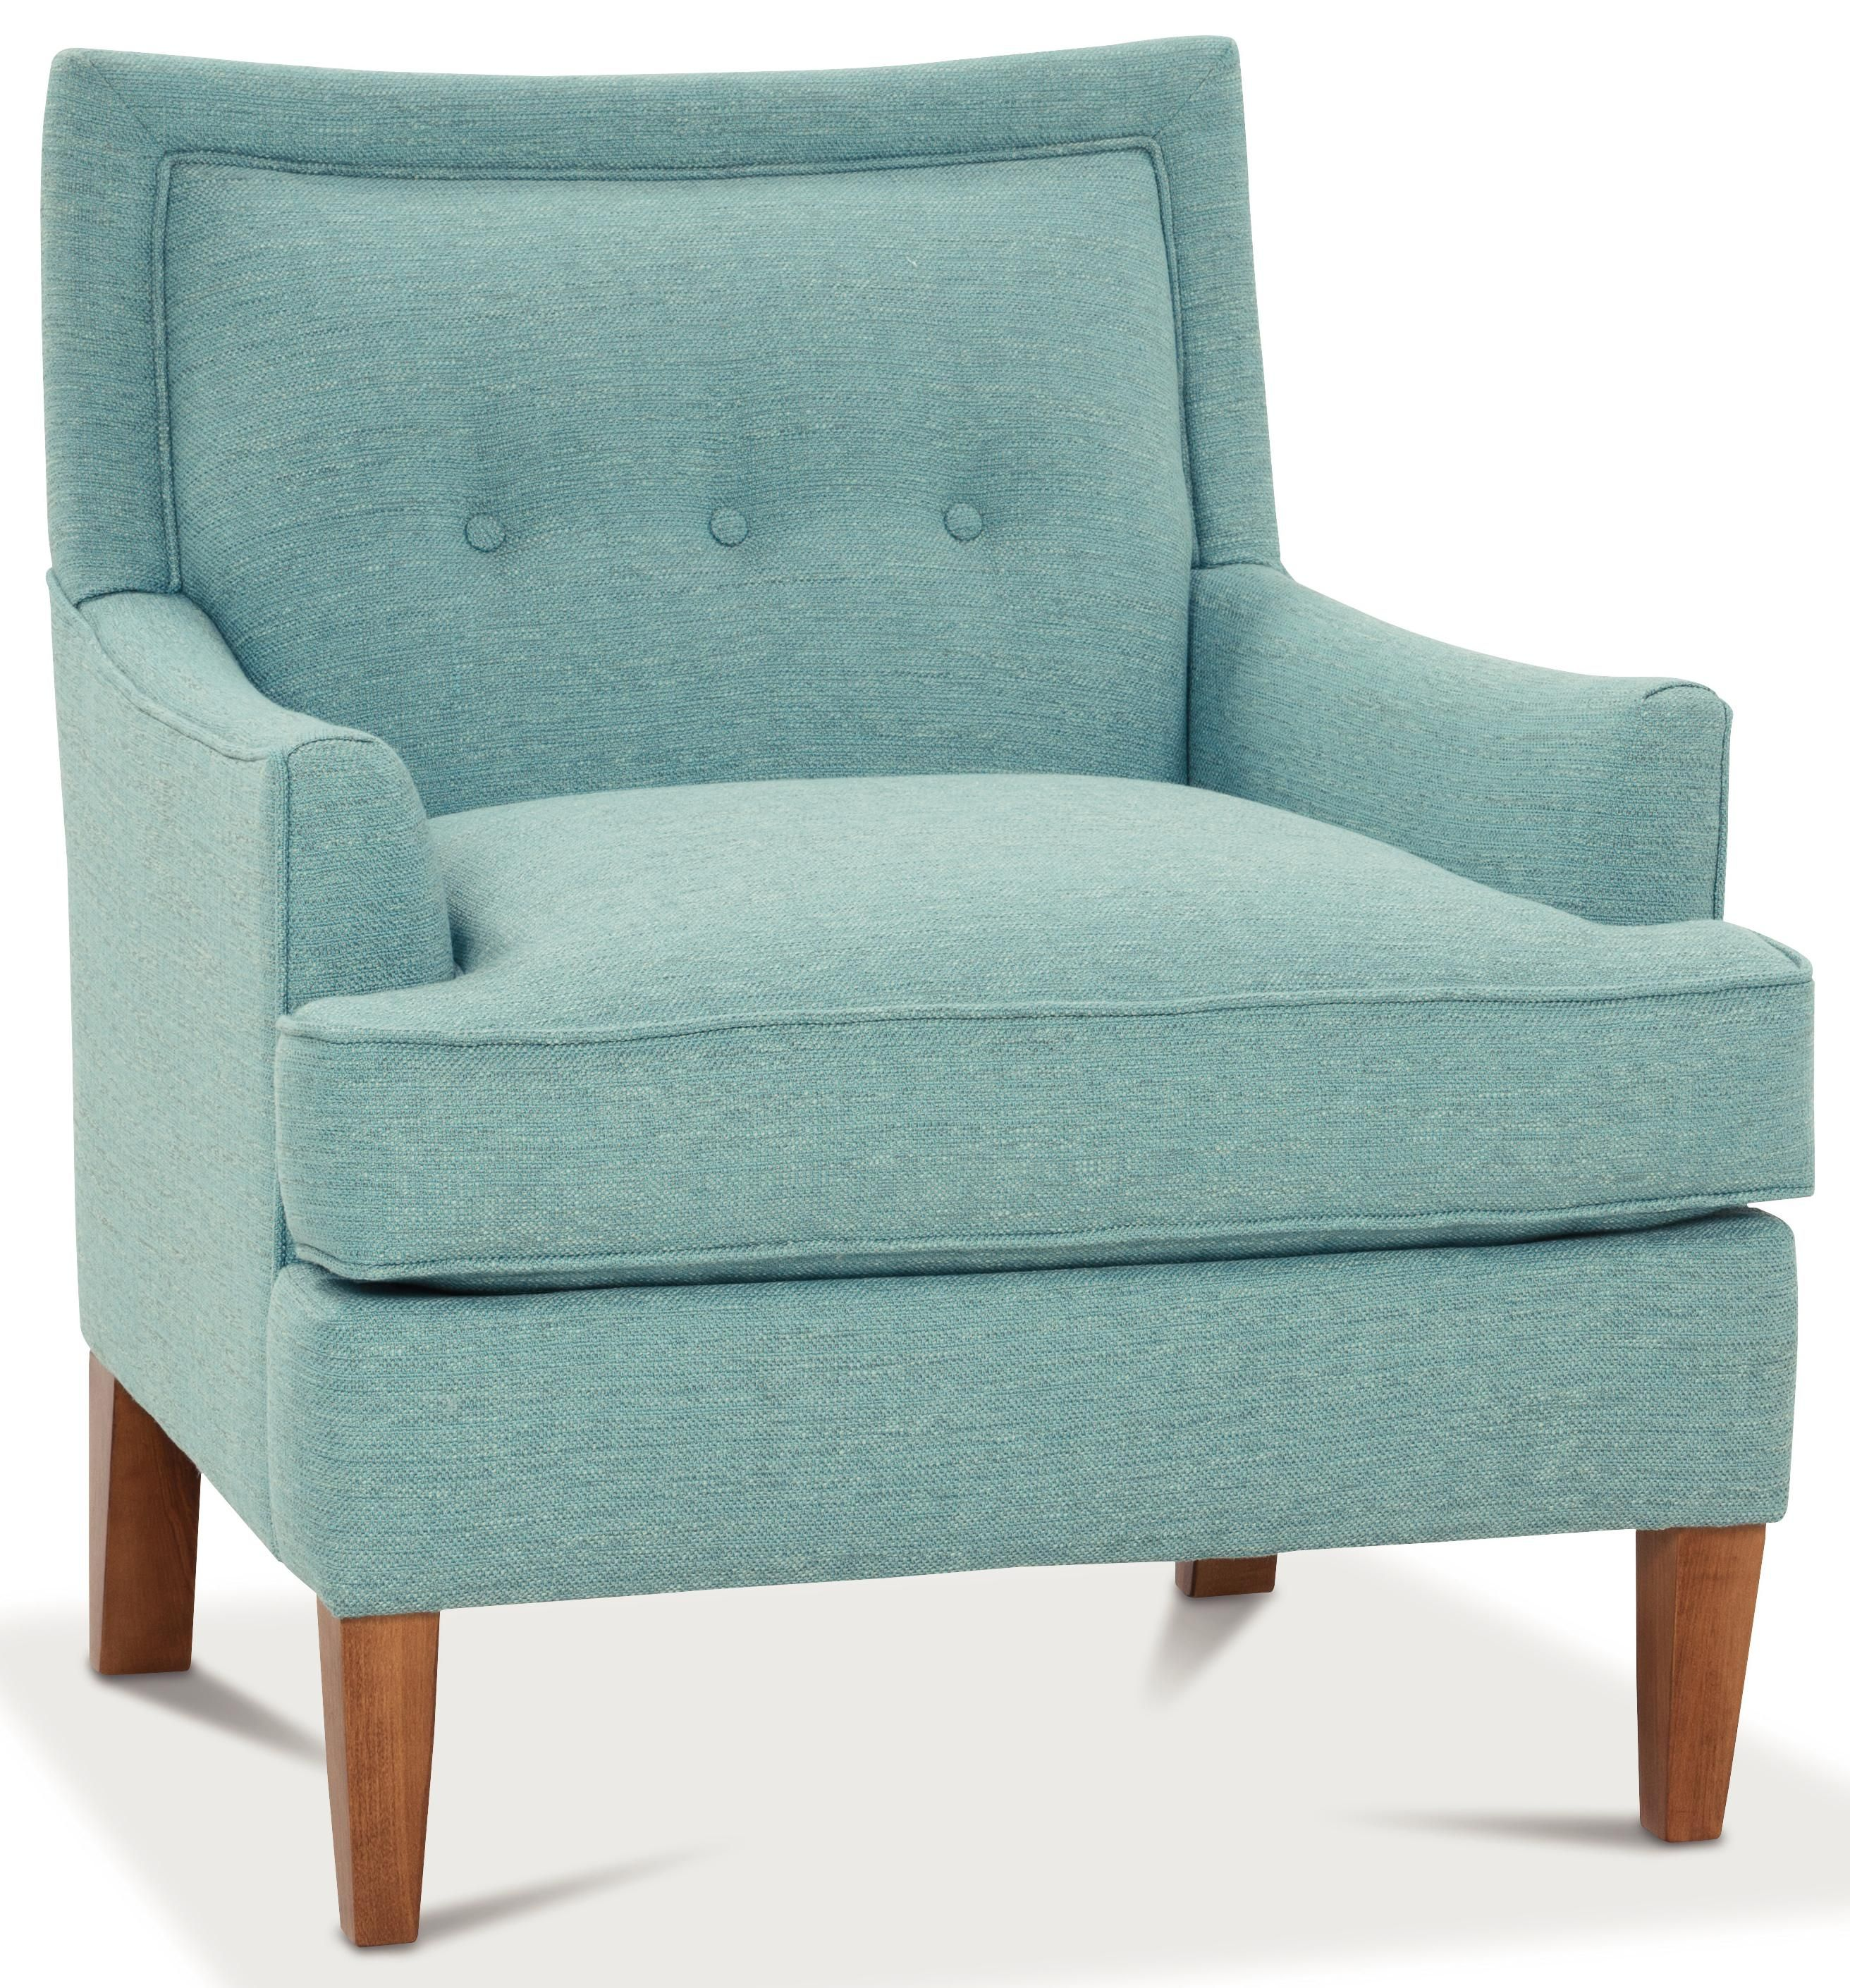 Monroe Low Back Chair by Rowe Decorate it